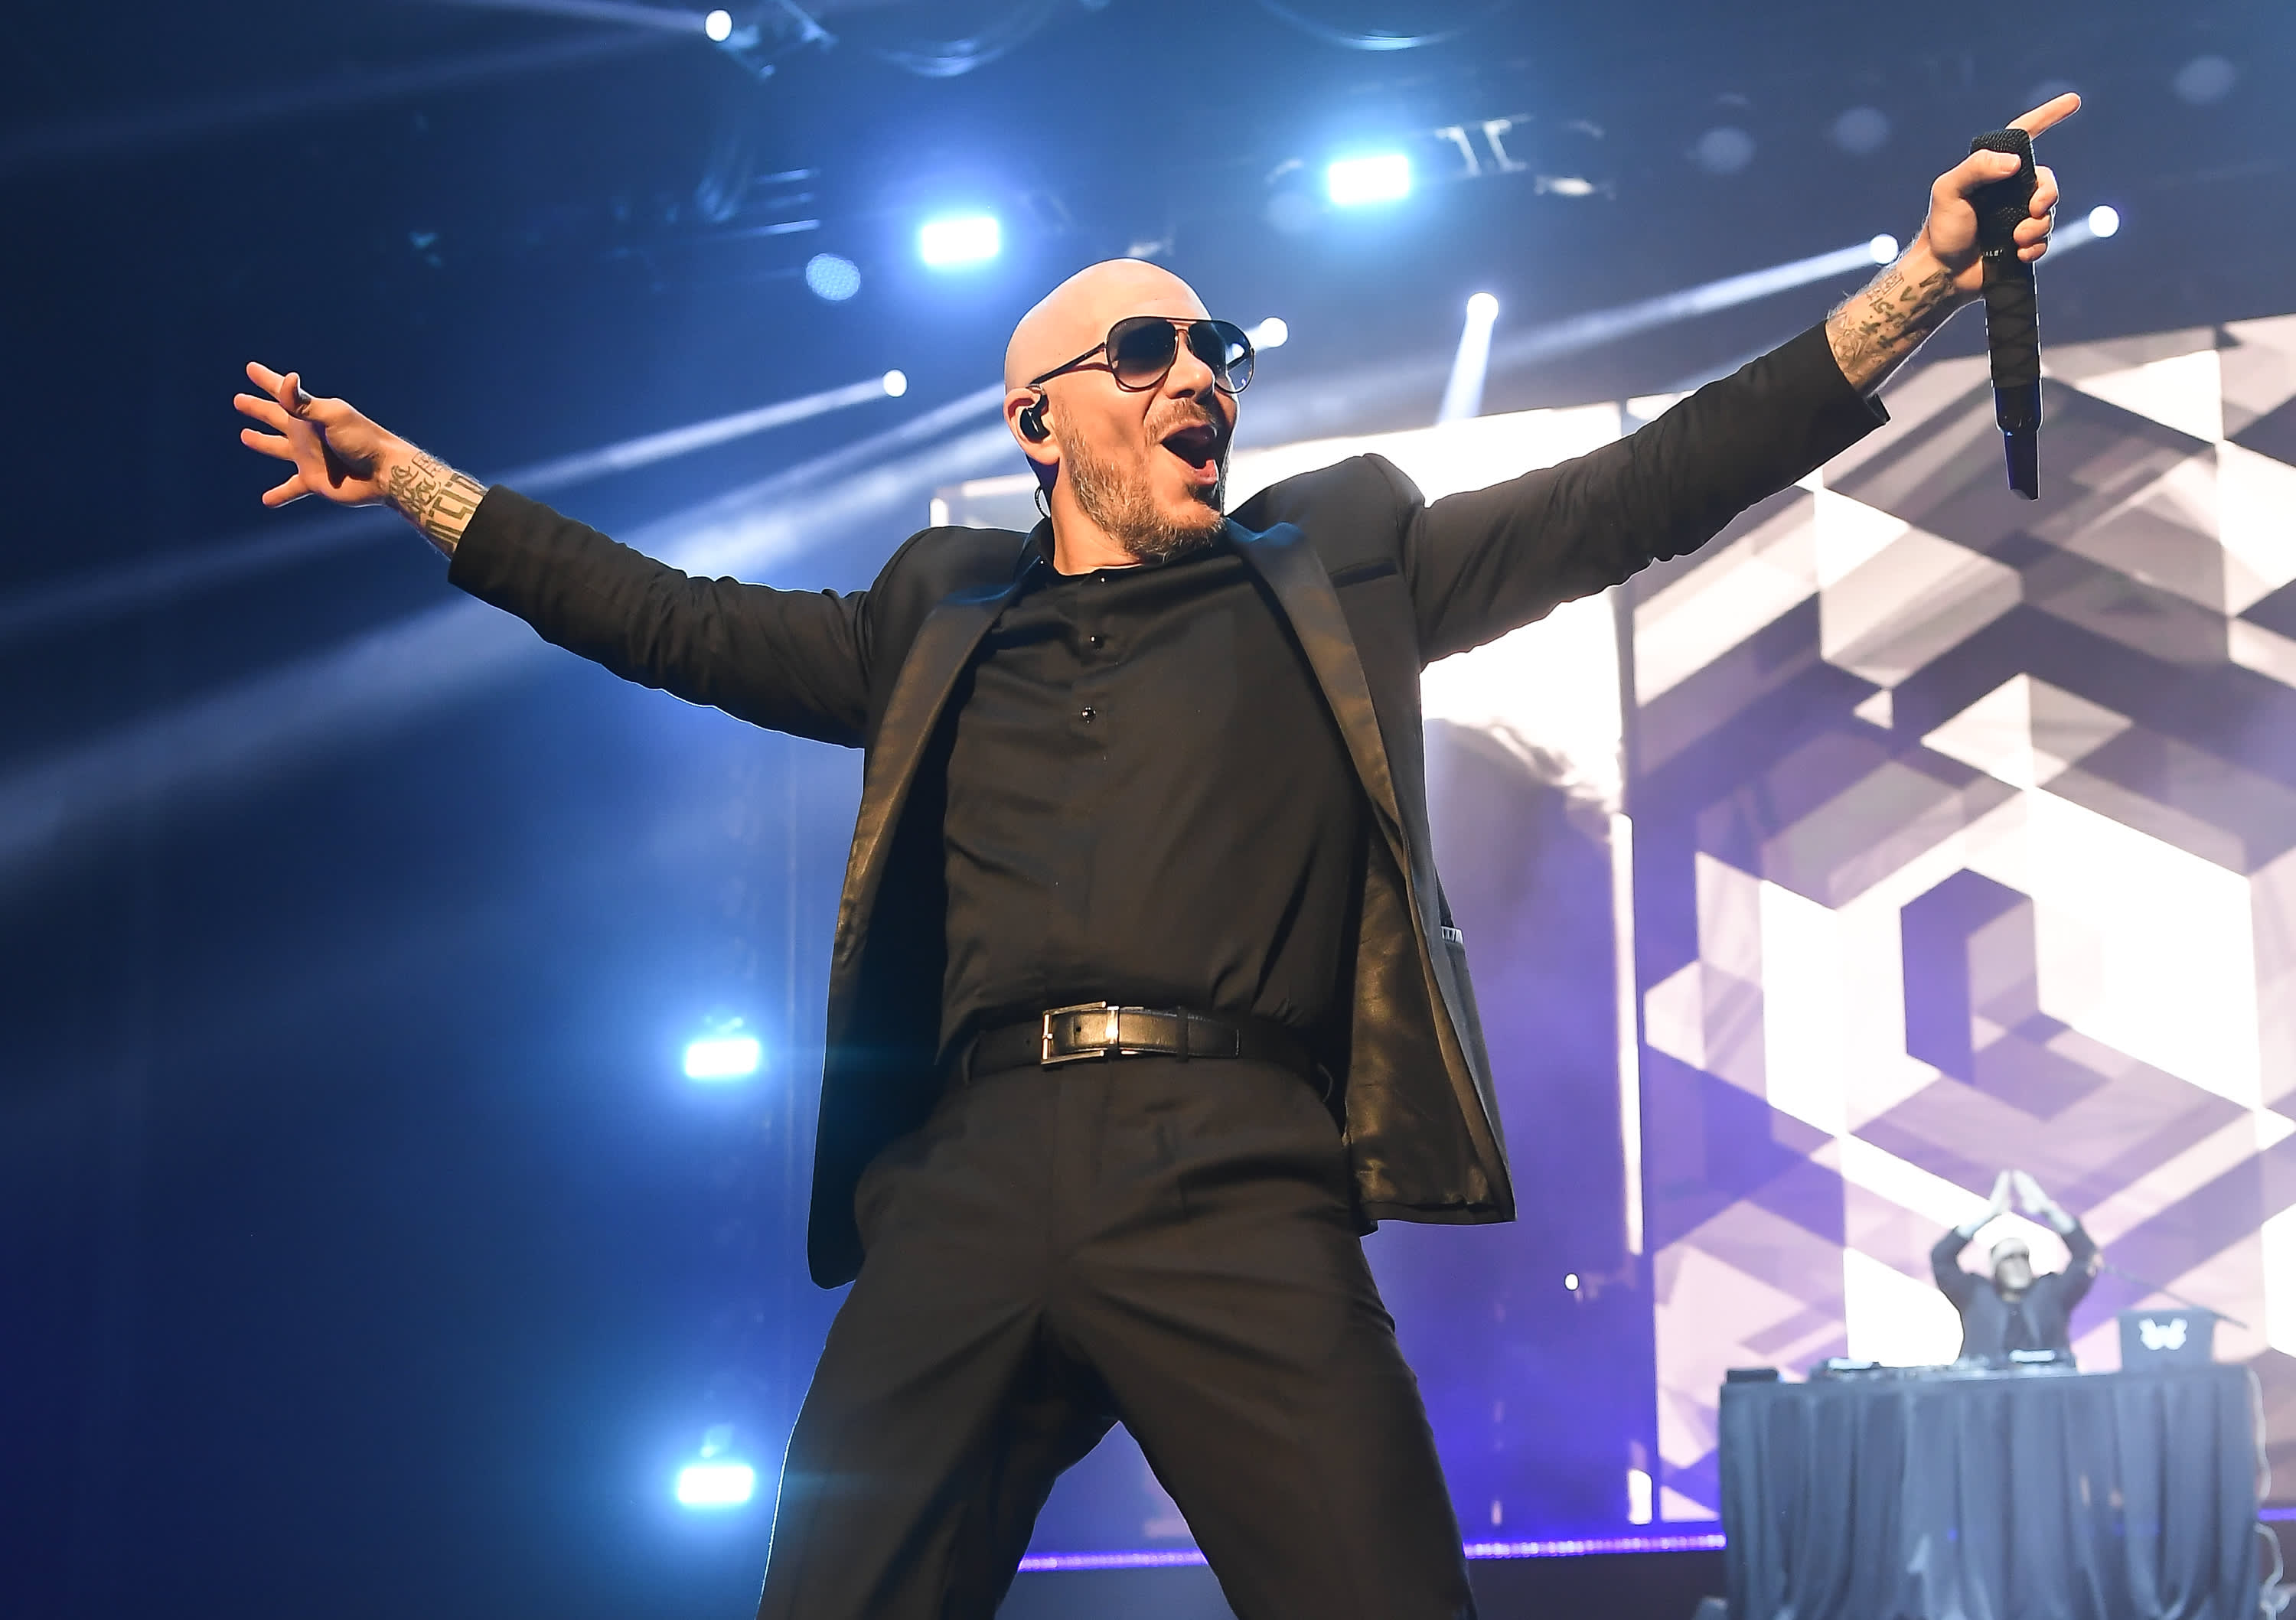 Rapper Pitbull, looking for the next big start-up investment, says biotech is a good bet